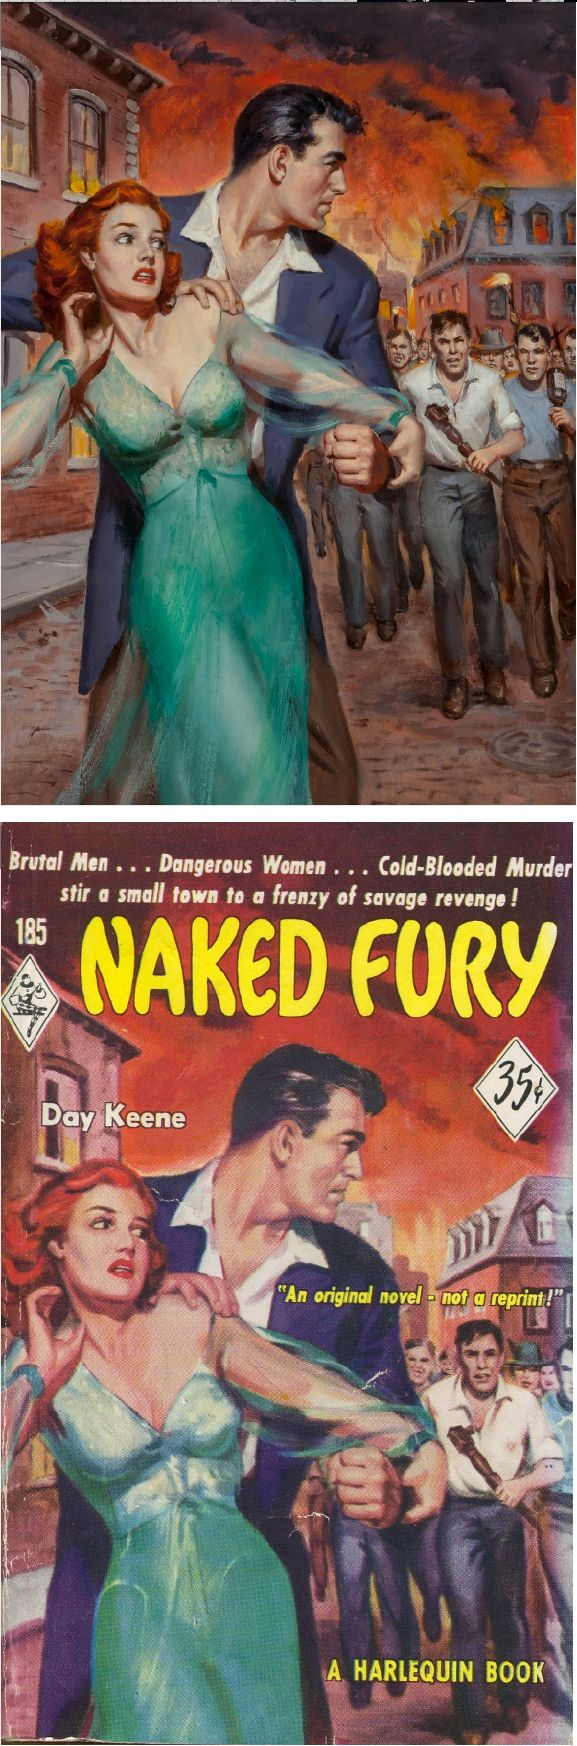 UNKNOWN - Naked Fury by Day Keene - 1952 Harlequin Romance #185 - items by pulpcovers